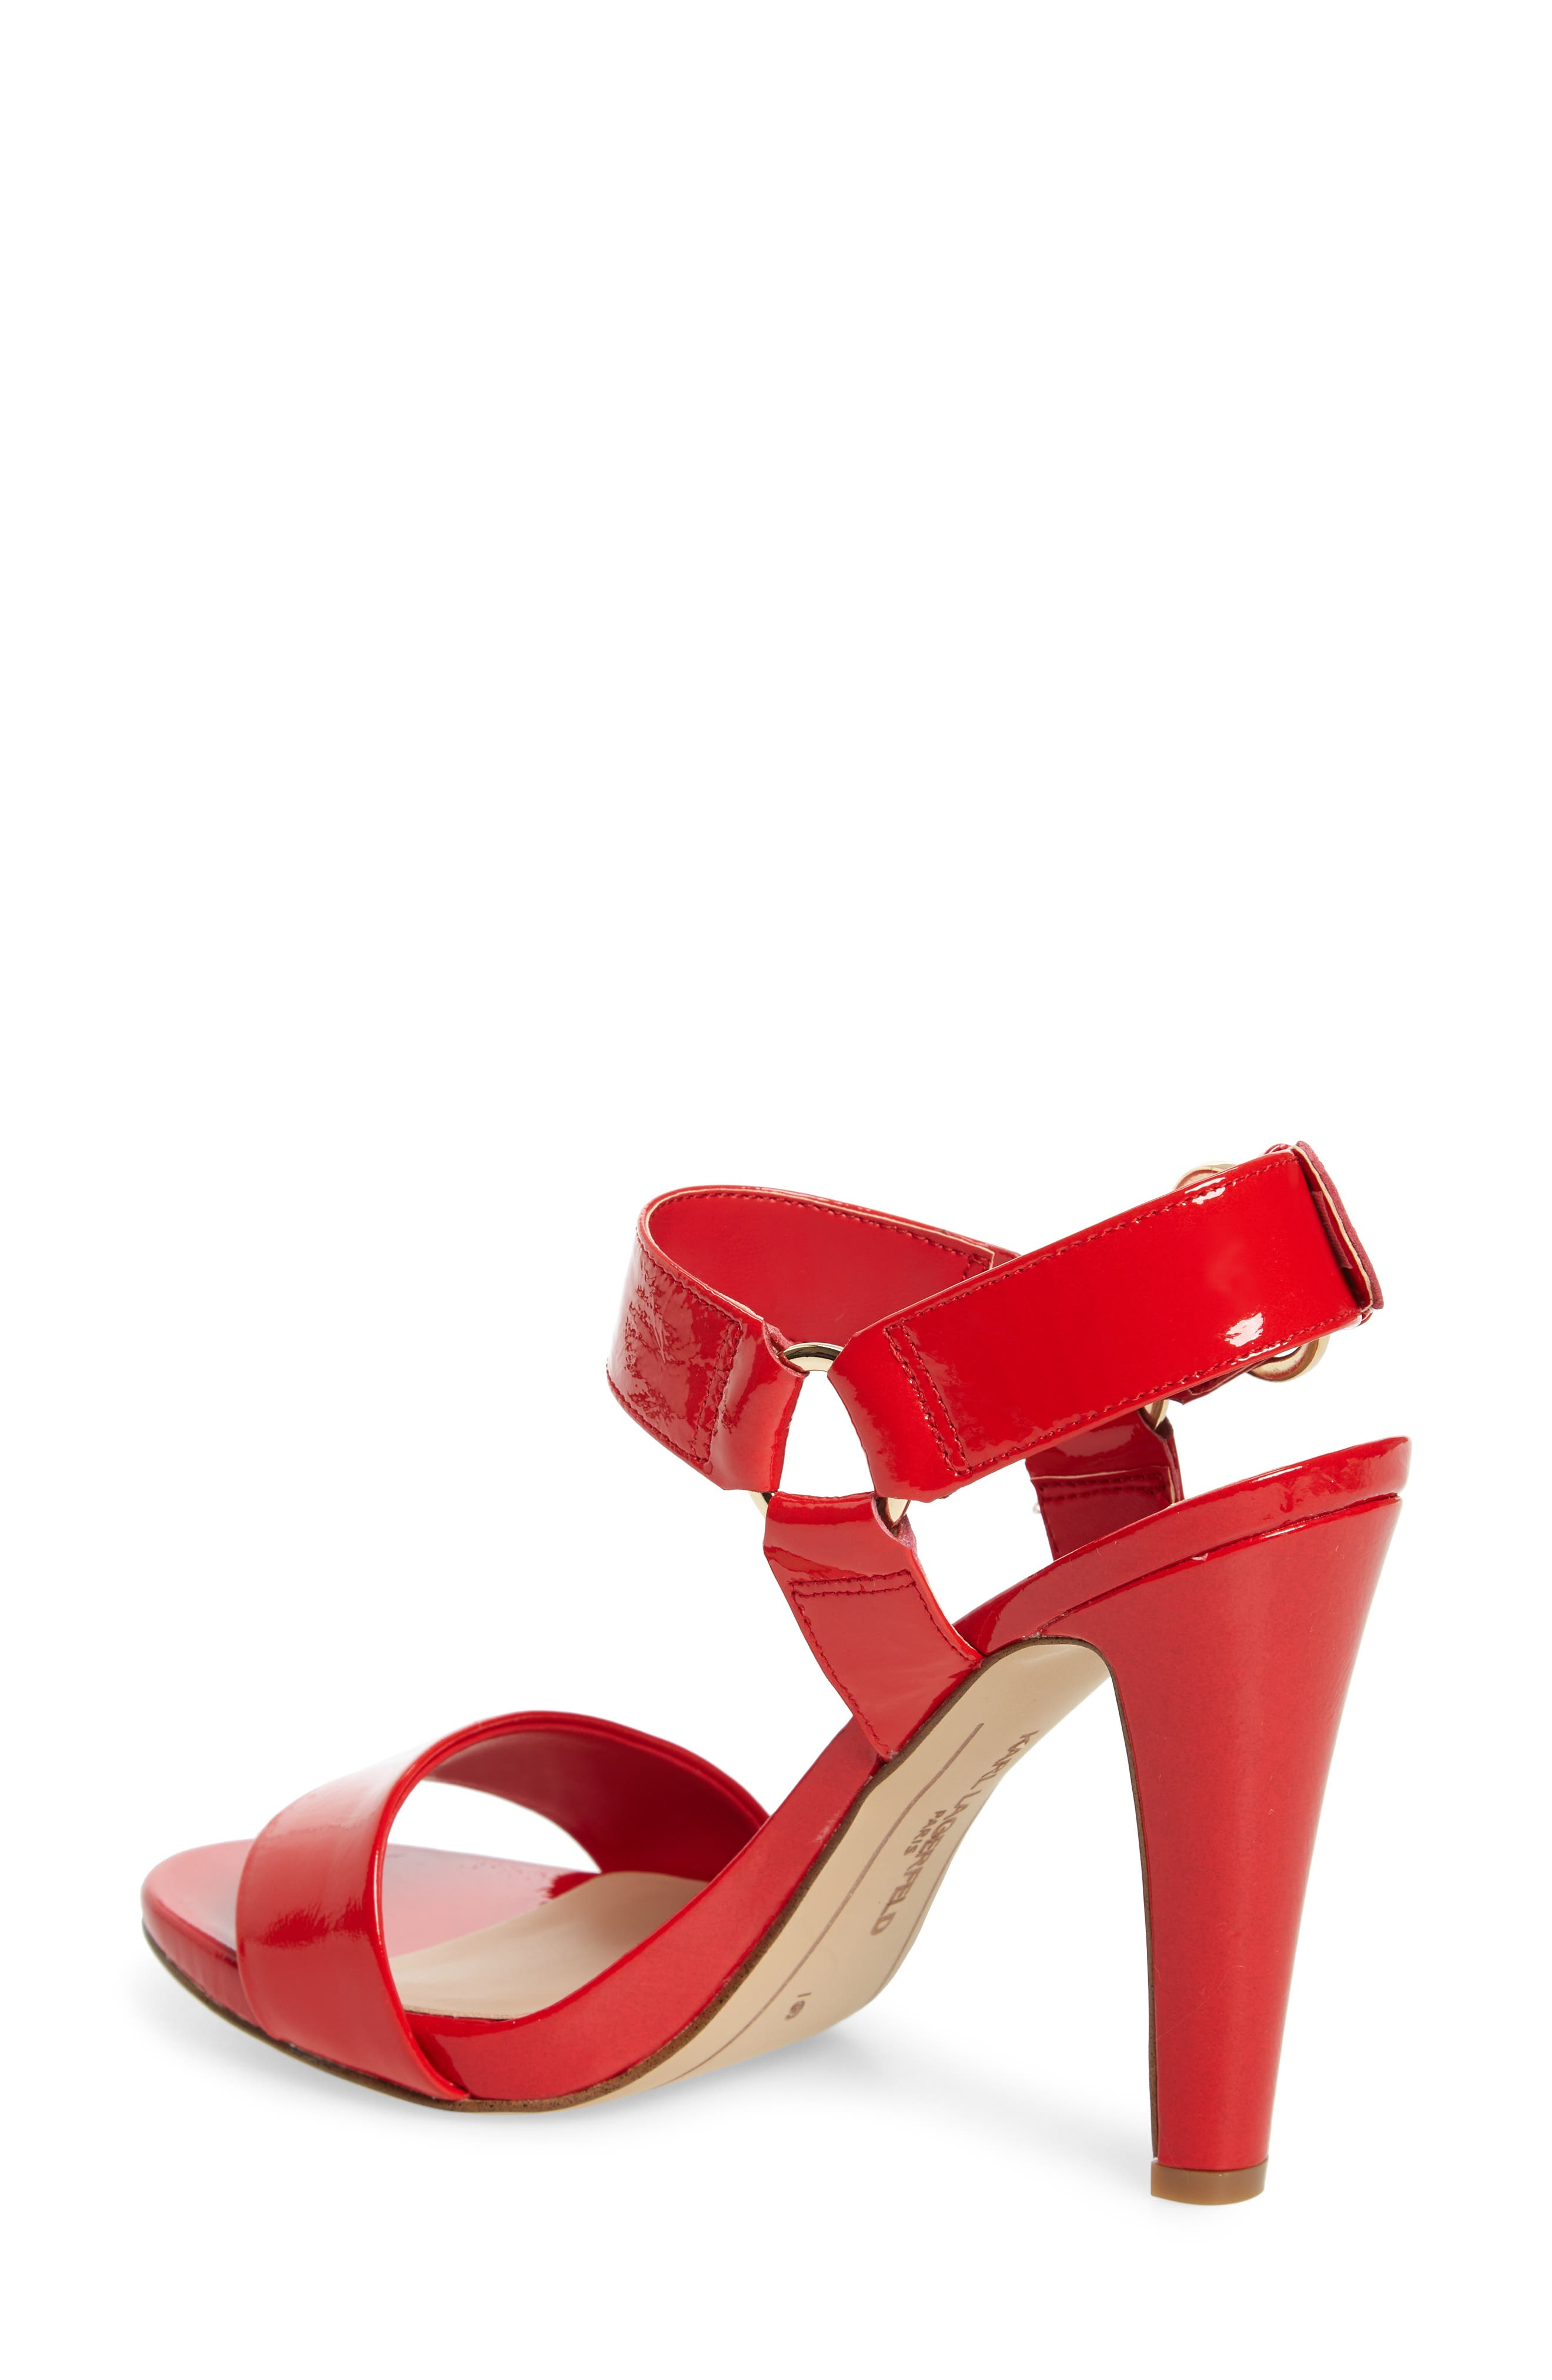 Cieone Sandal,                             Alternate thumbnail 2, color,                             RED PATENT